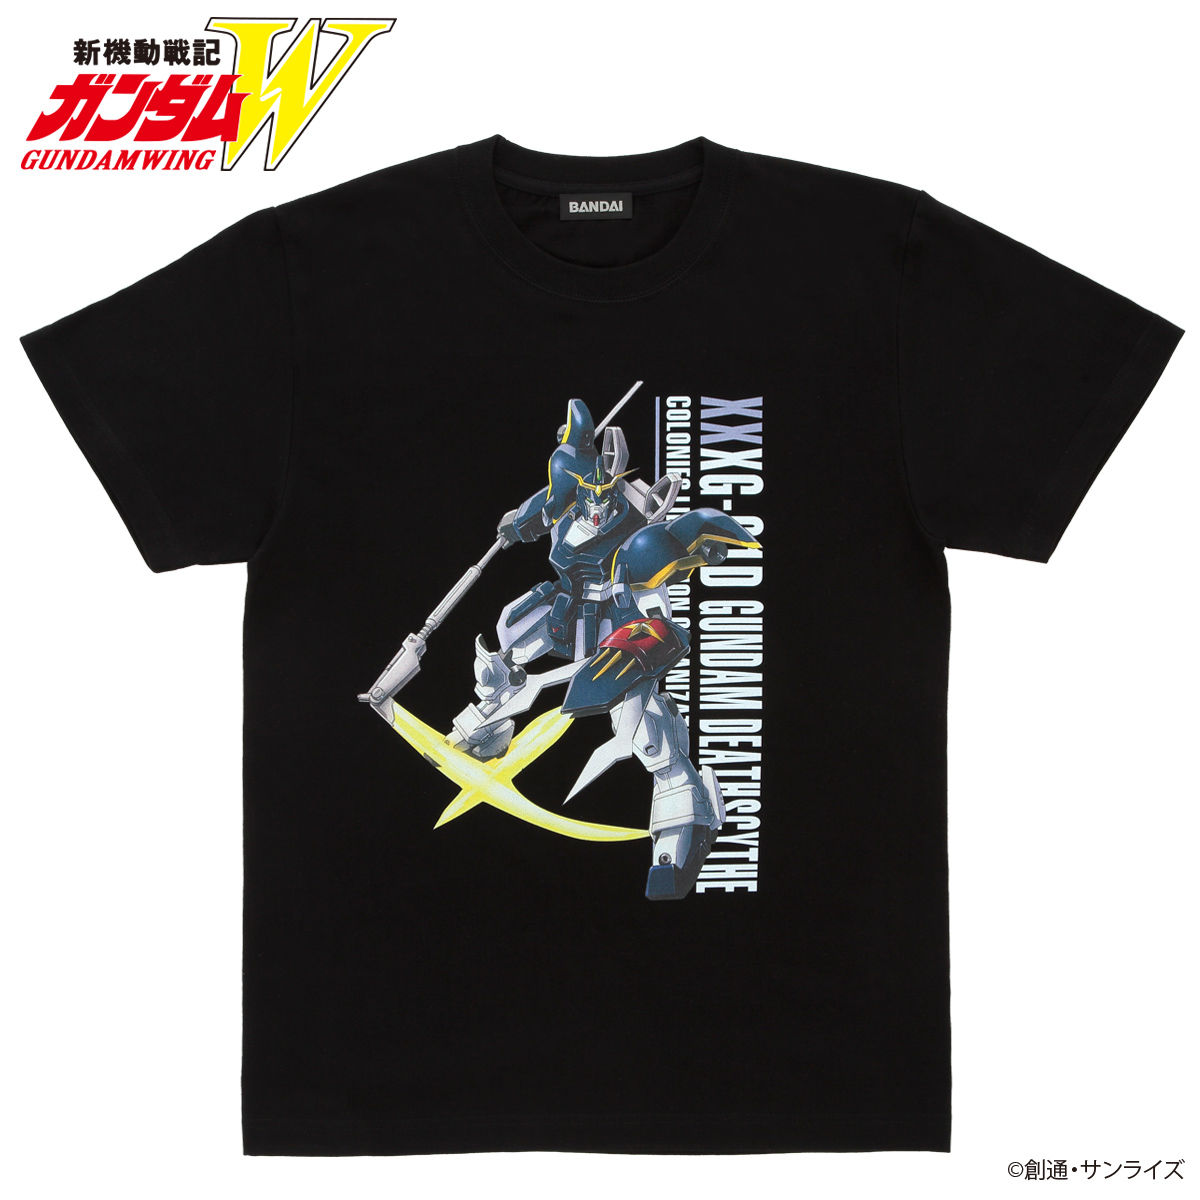 Mobile Suit Gundam Wing Full Color T-shirt Version 2.0